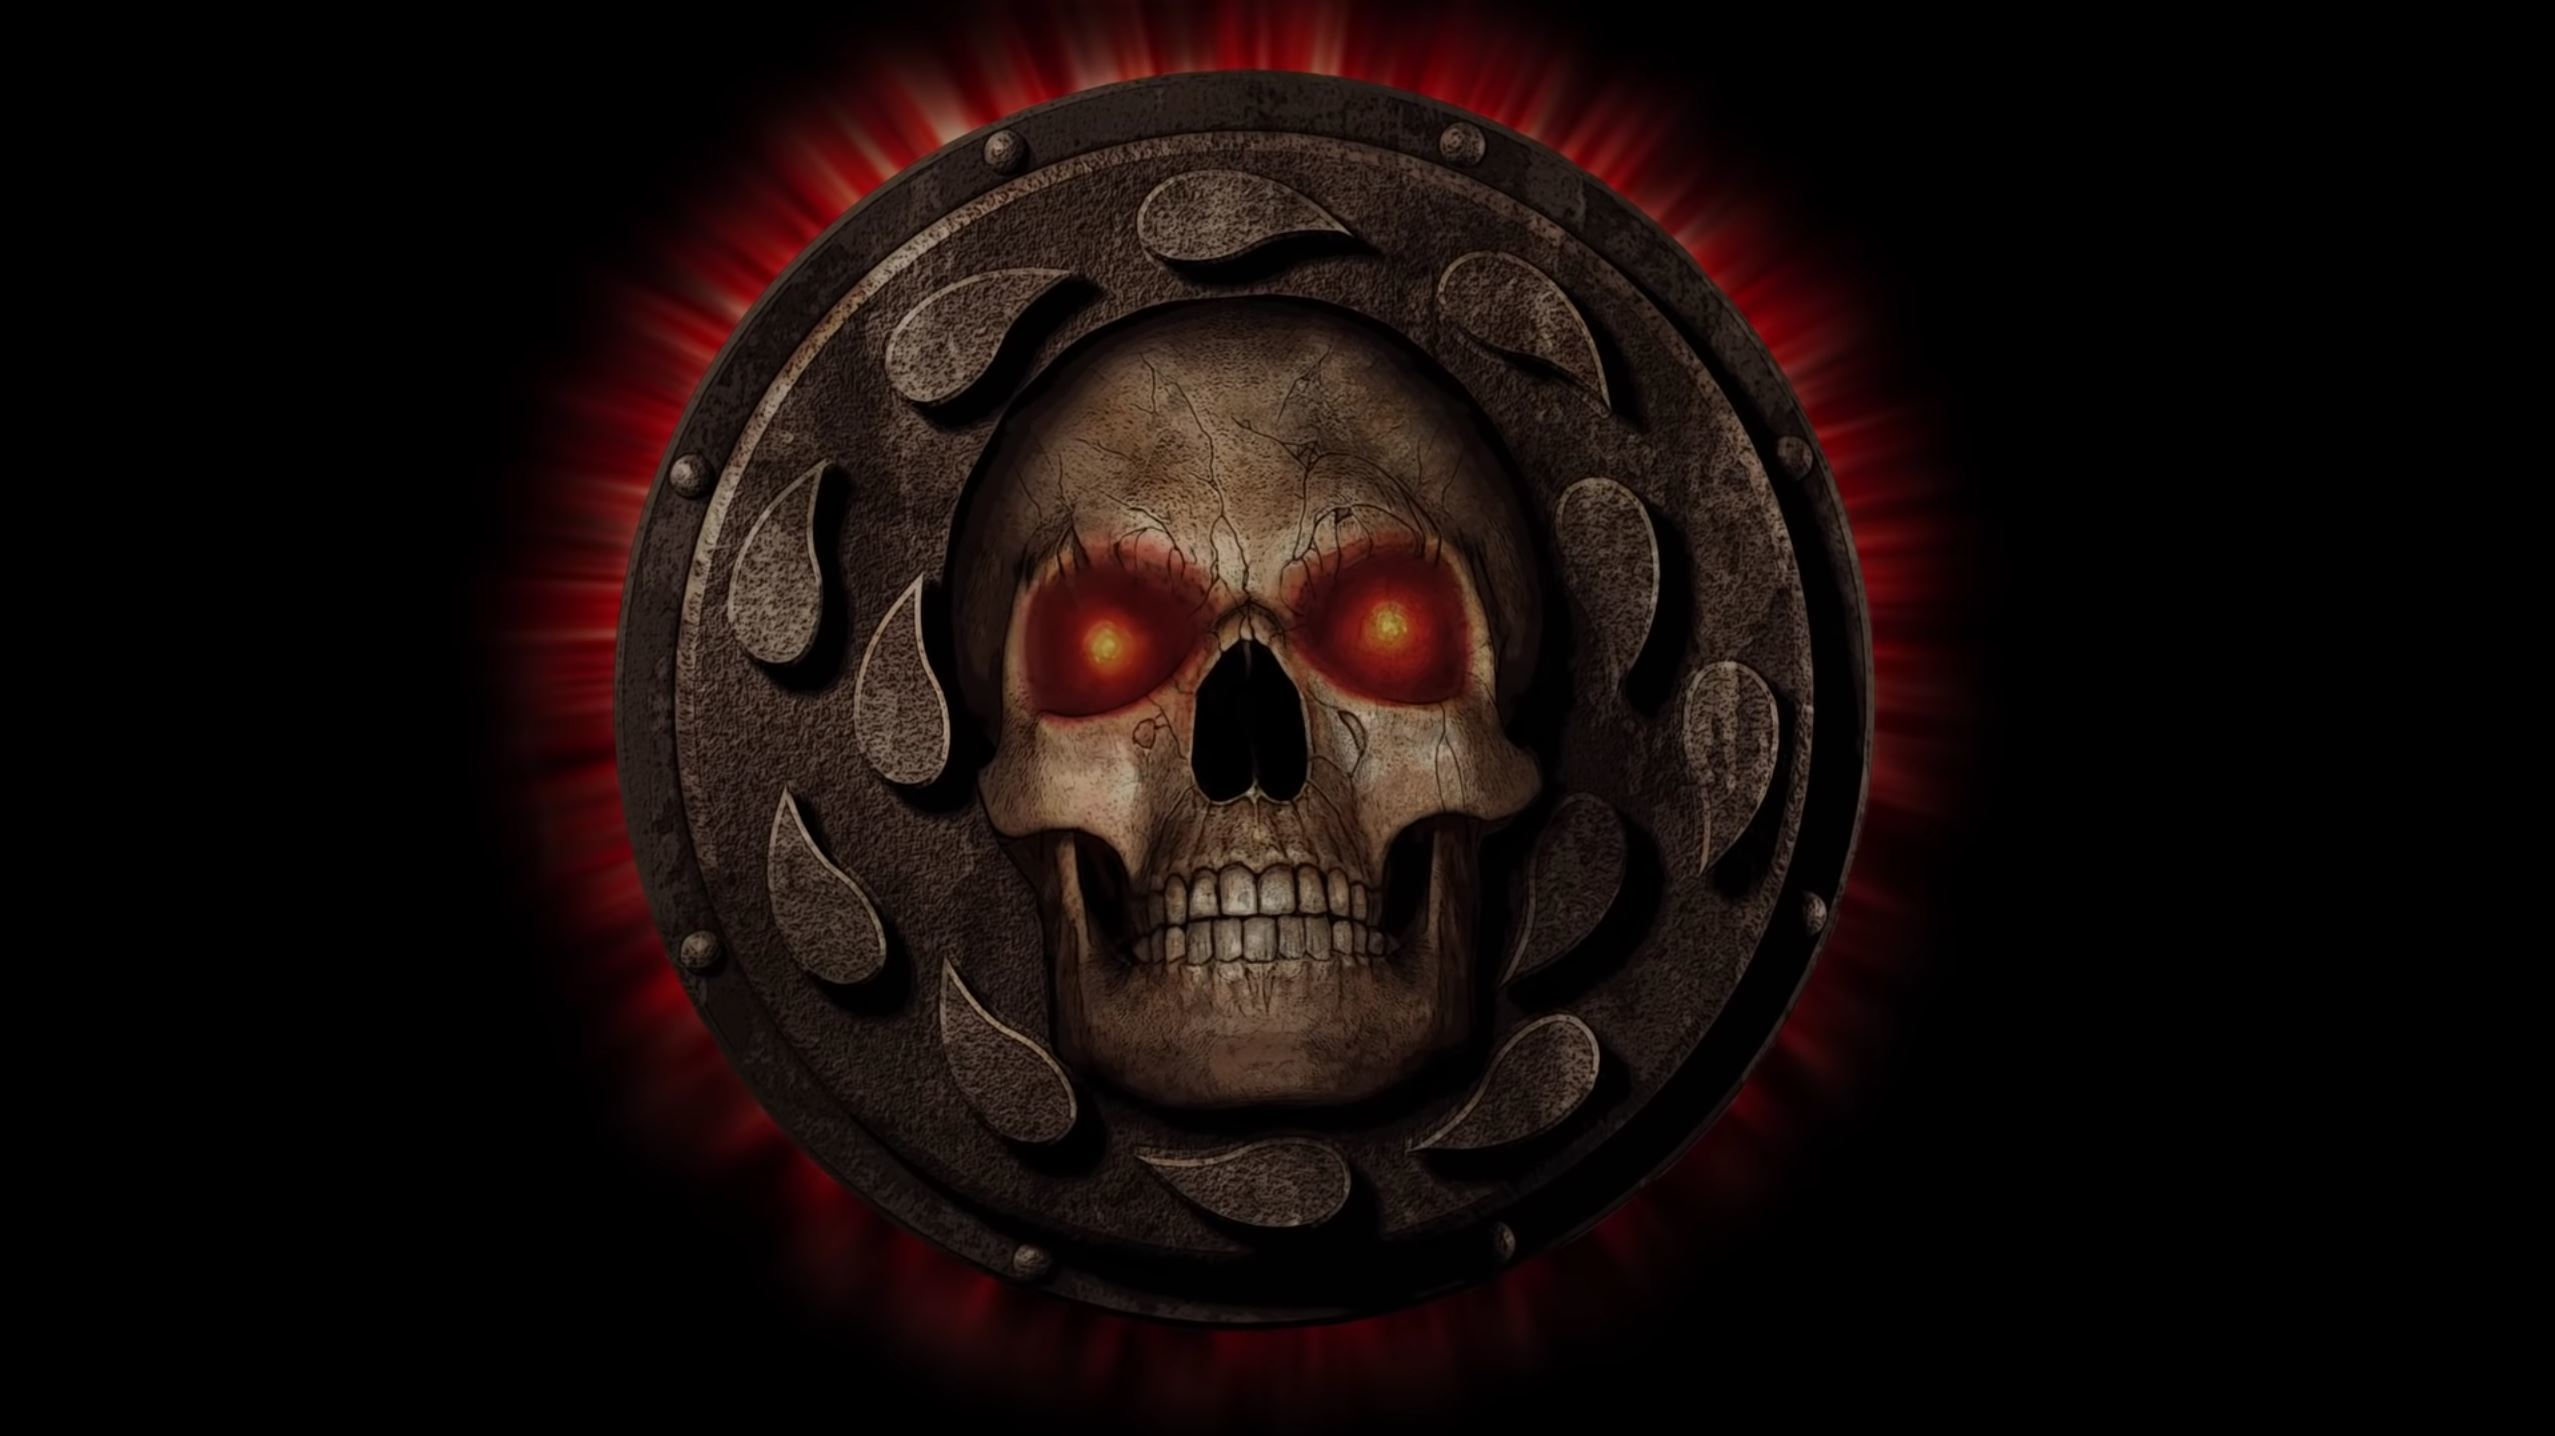 Baldur's Gate on Nintendo Switch may be the best way to play the series